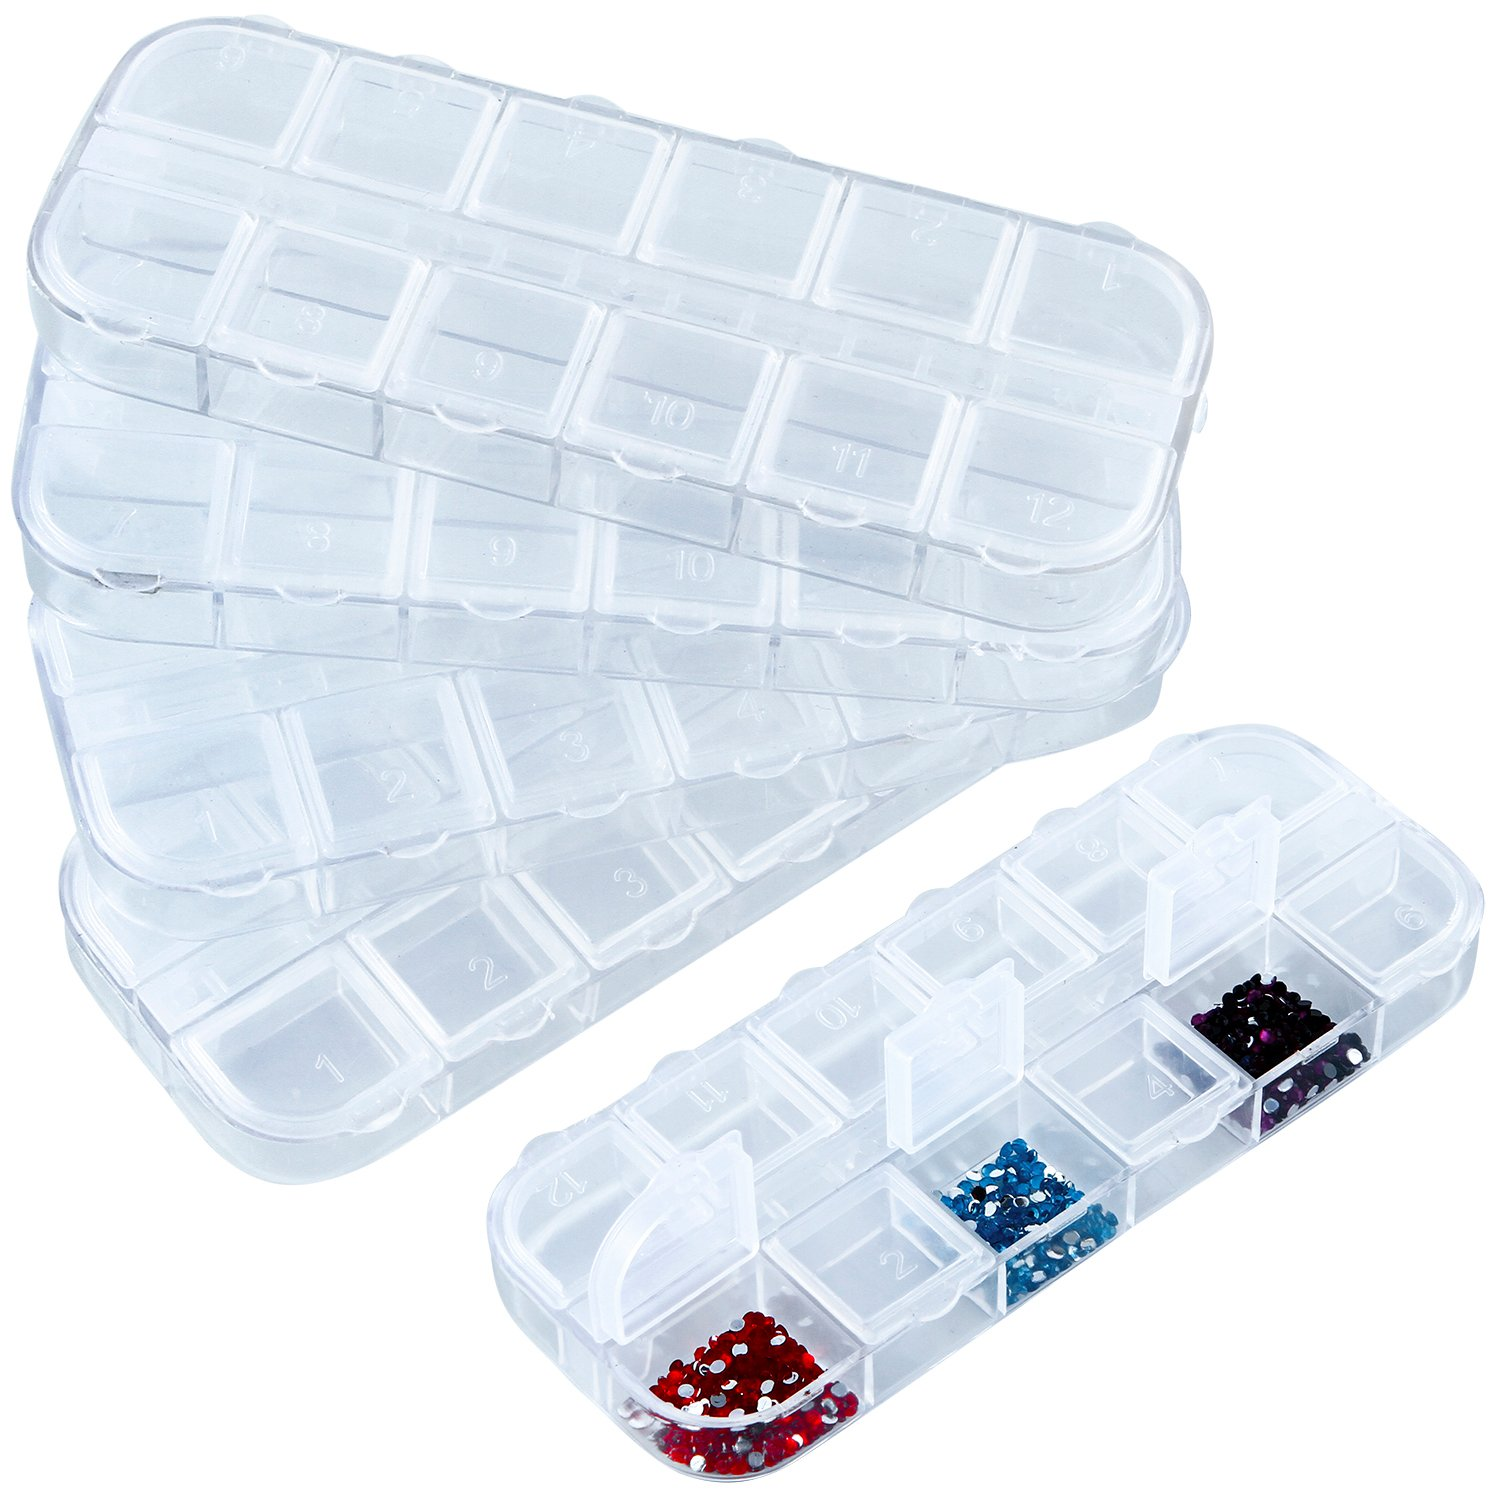 Aneco 6 Pieces 12 Grids Diamond Painting Embroidery Box Jewelry Storage Boxes Diamond Painting Accessories for DIY Craft 4336934973